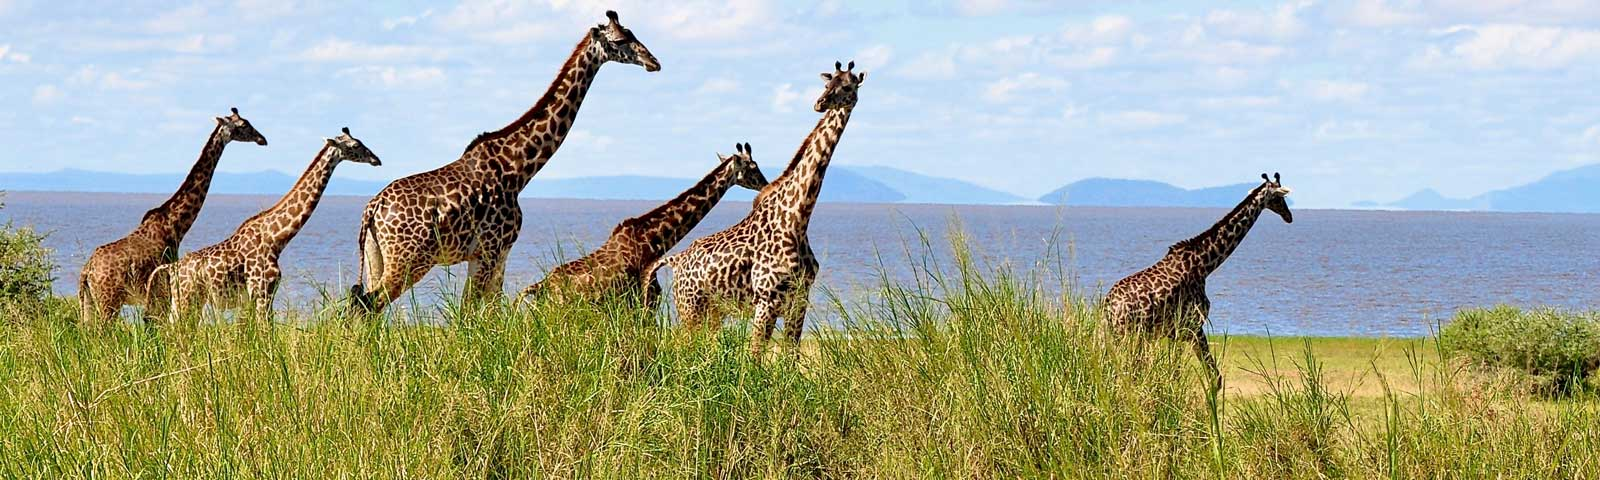 Luxury Safari Holidays | African Safari | Elegant Resorts